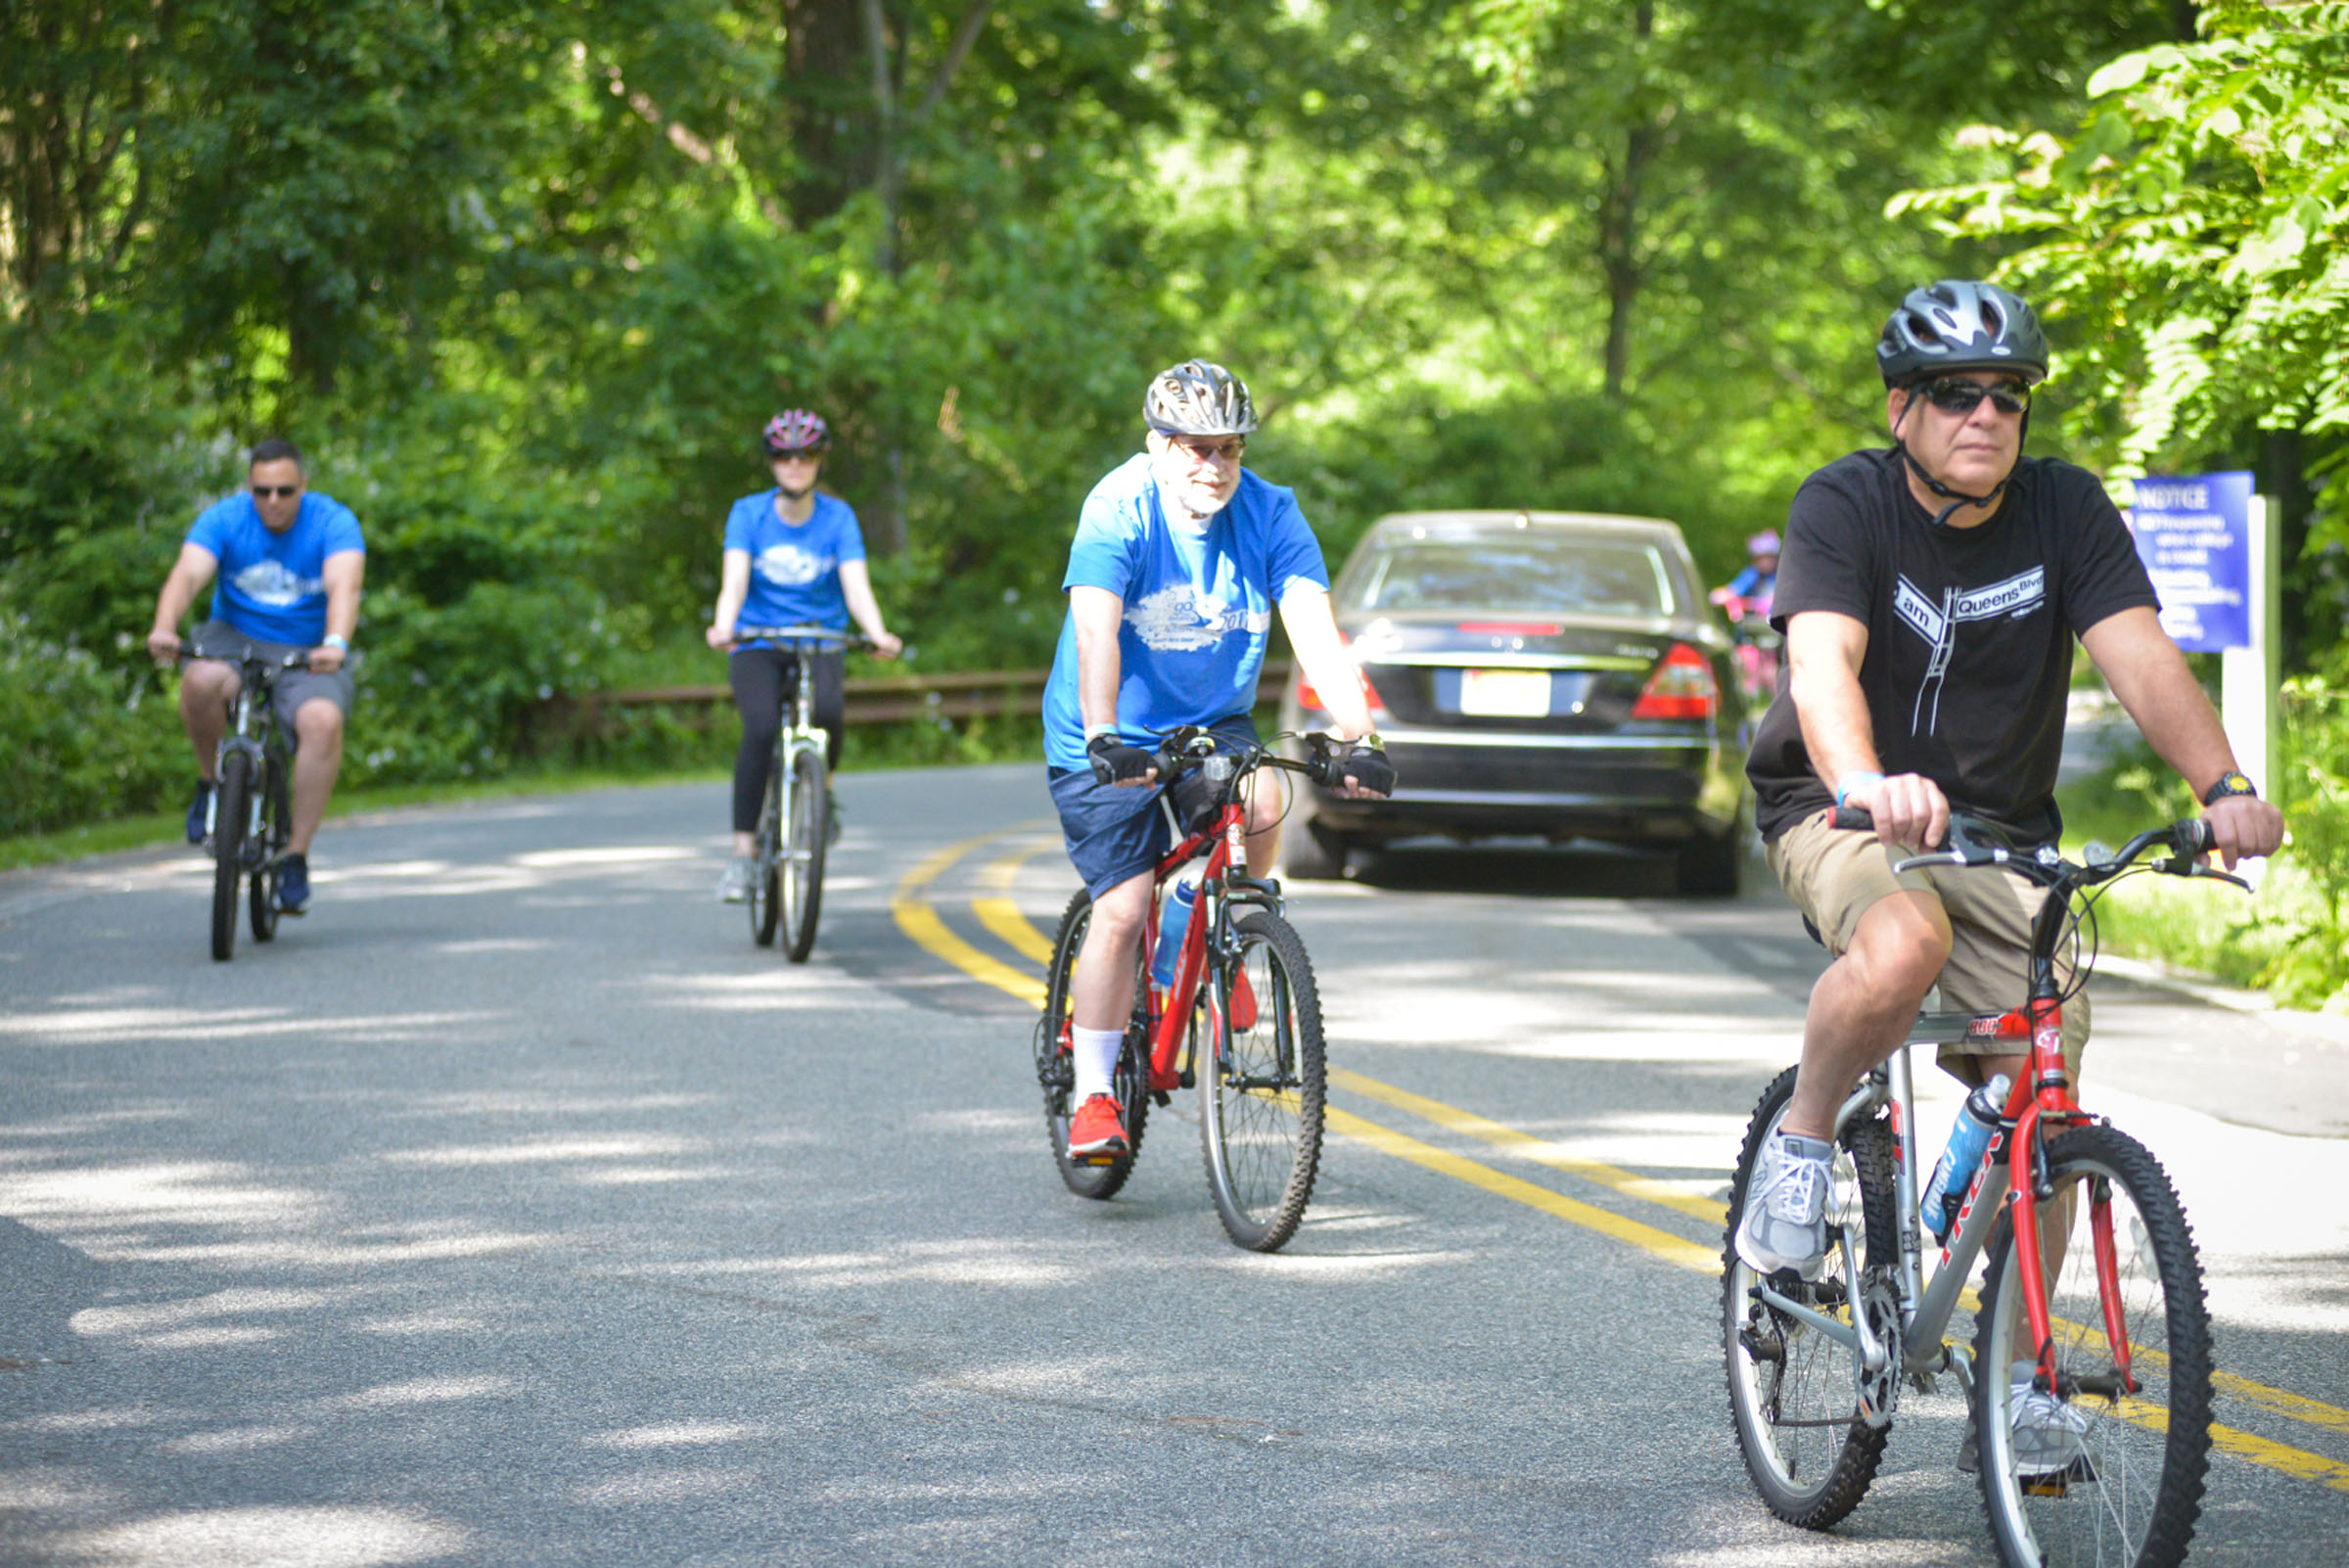 2017-06-04 GTD4A Charity Bike Ride - BCC - Paramus NJ-2025.jpg